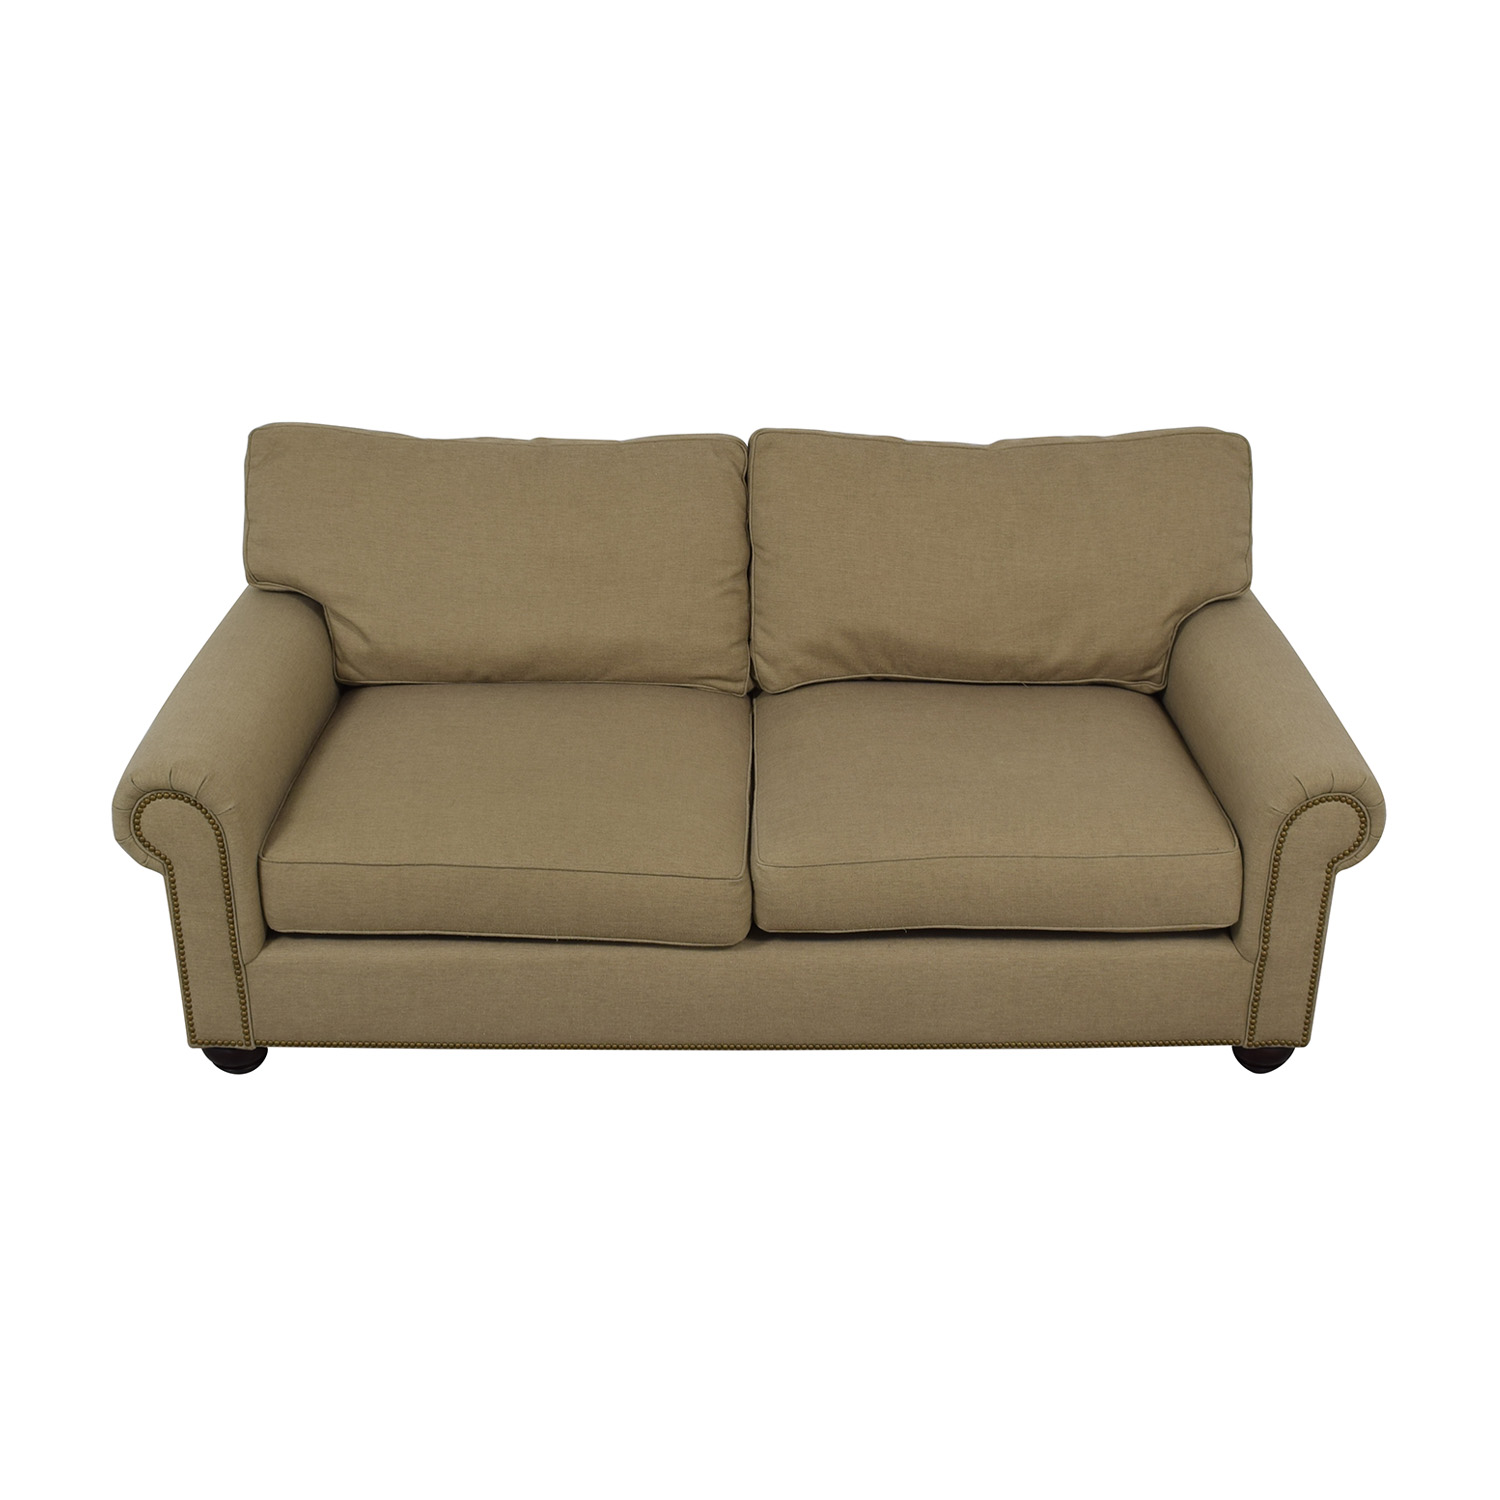 Pottery Barn Pottery Barn Webster Beige Two-Cushion Couch coupon